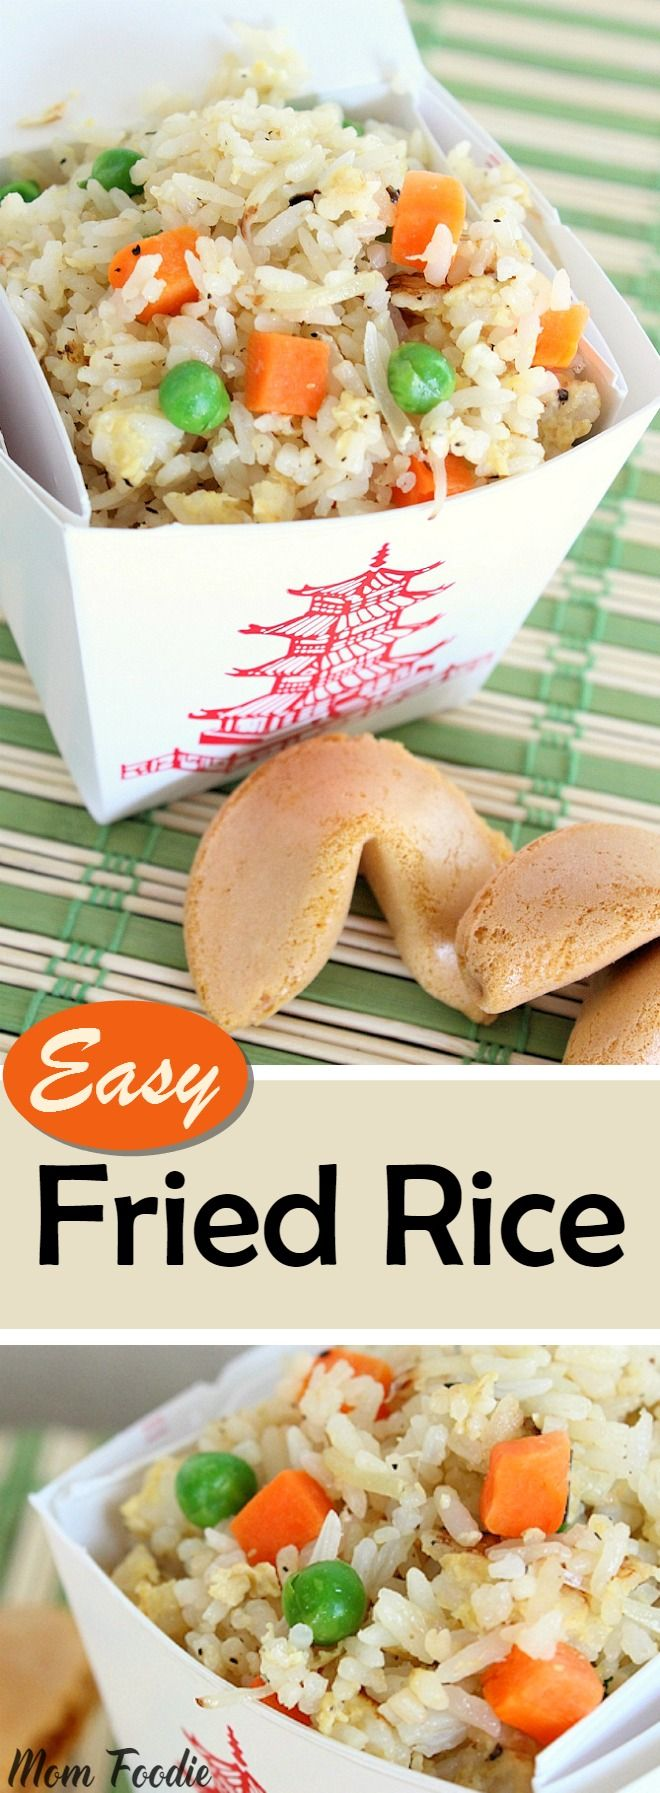 how to make easy fried rice at home